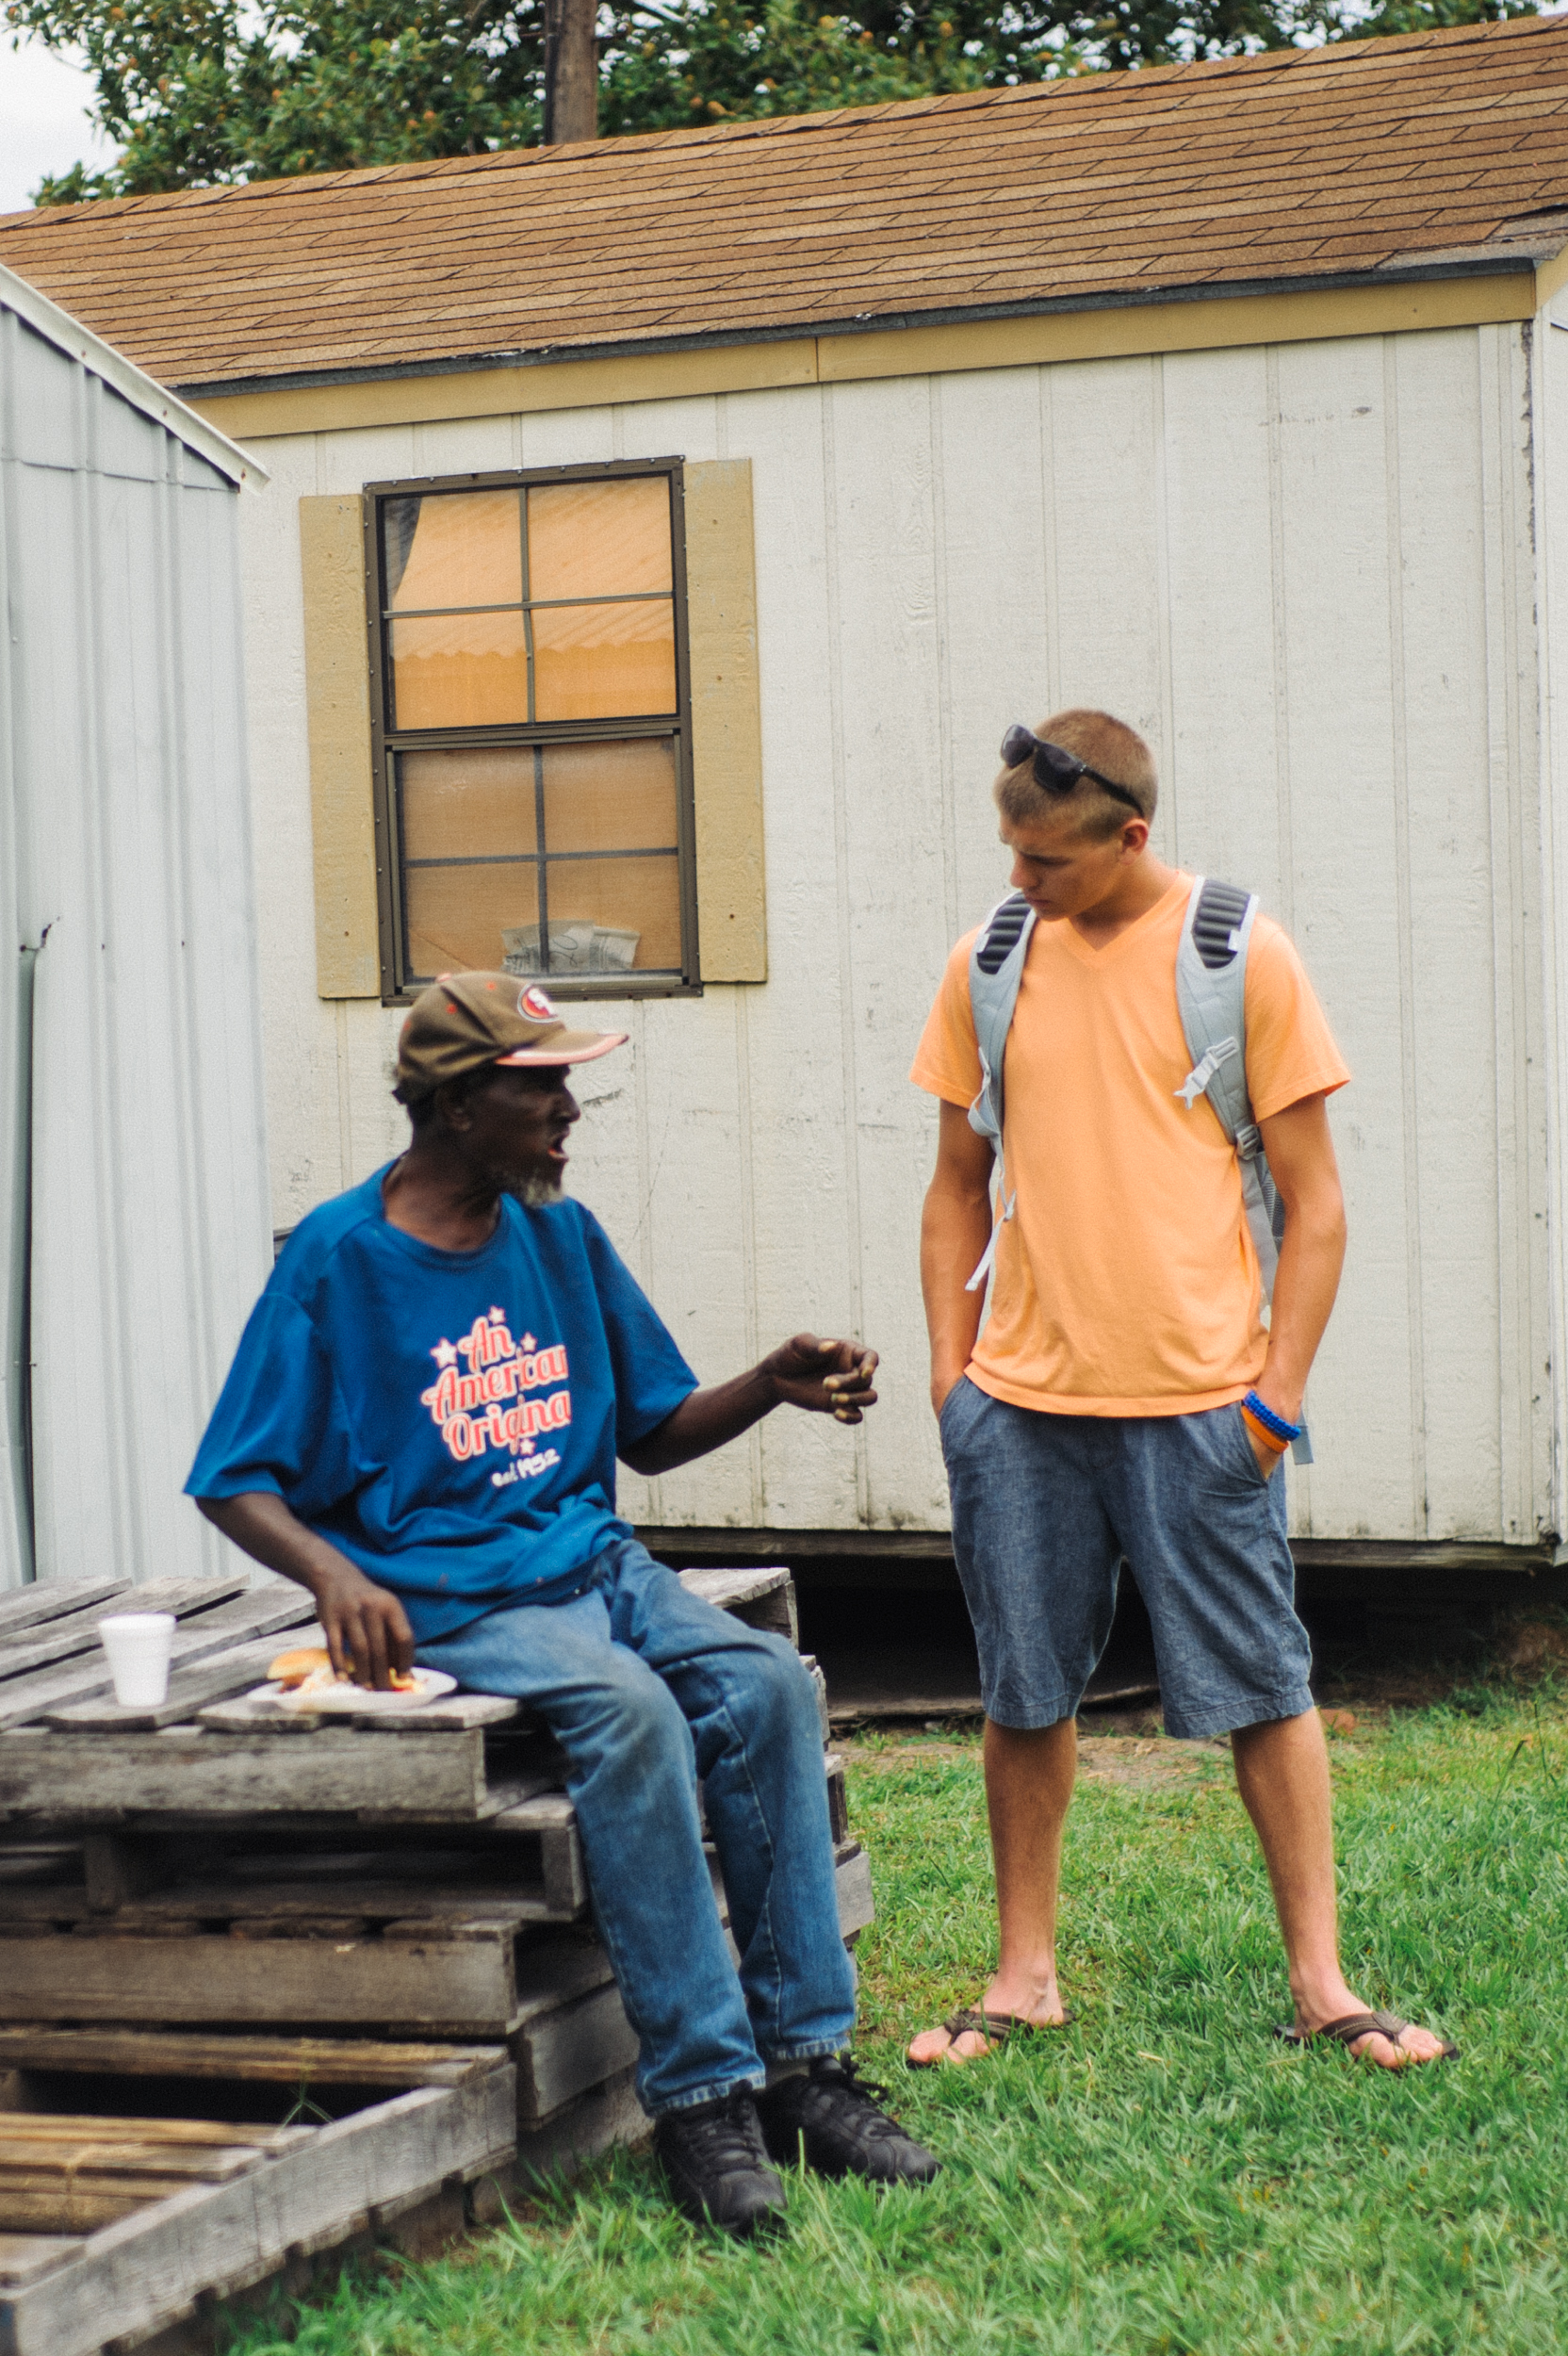 A Go Group Guide shares the Gospel after we host an inner city cookout.